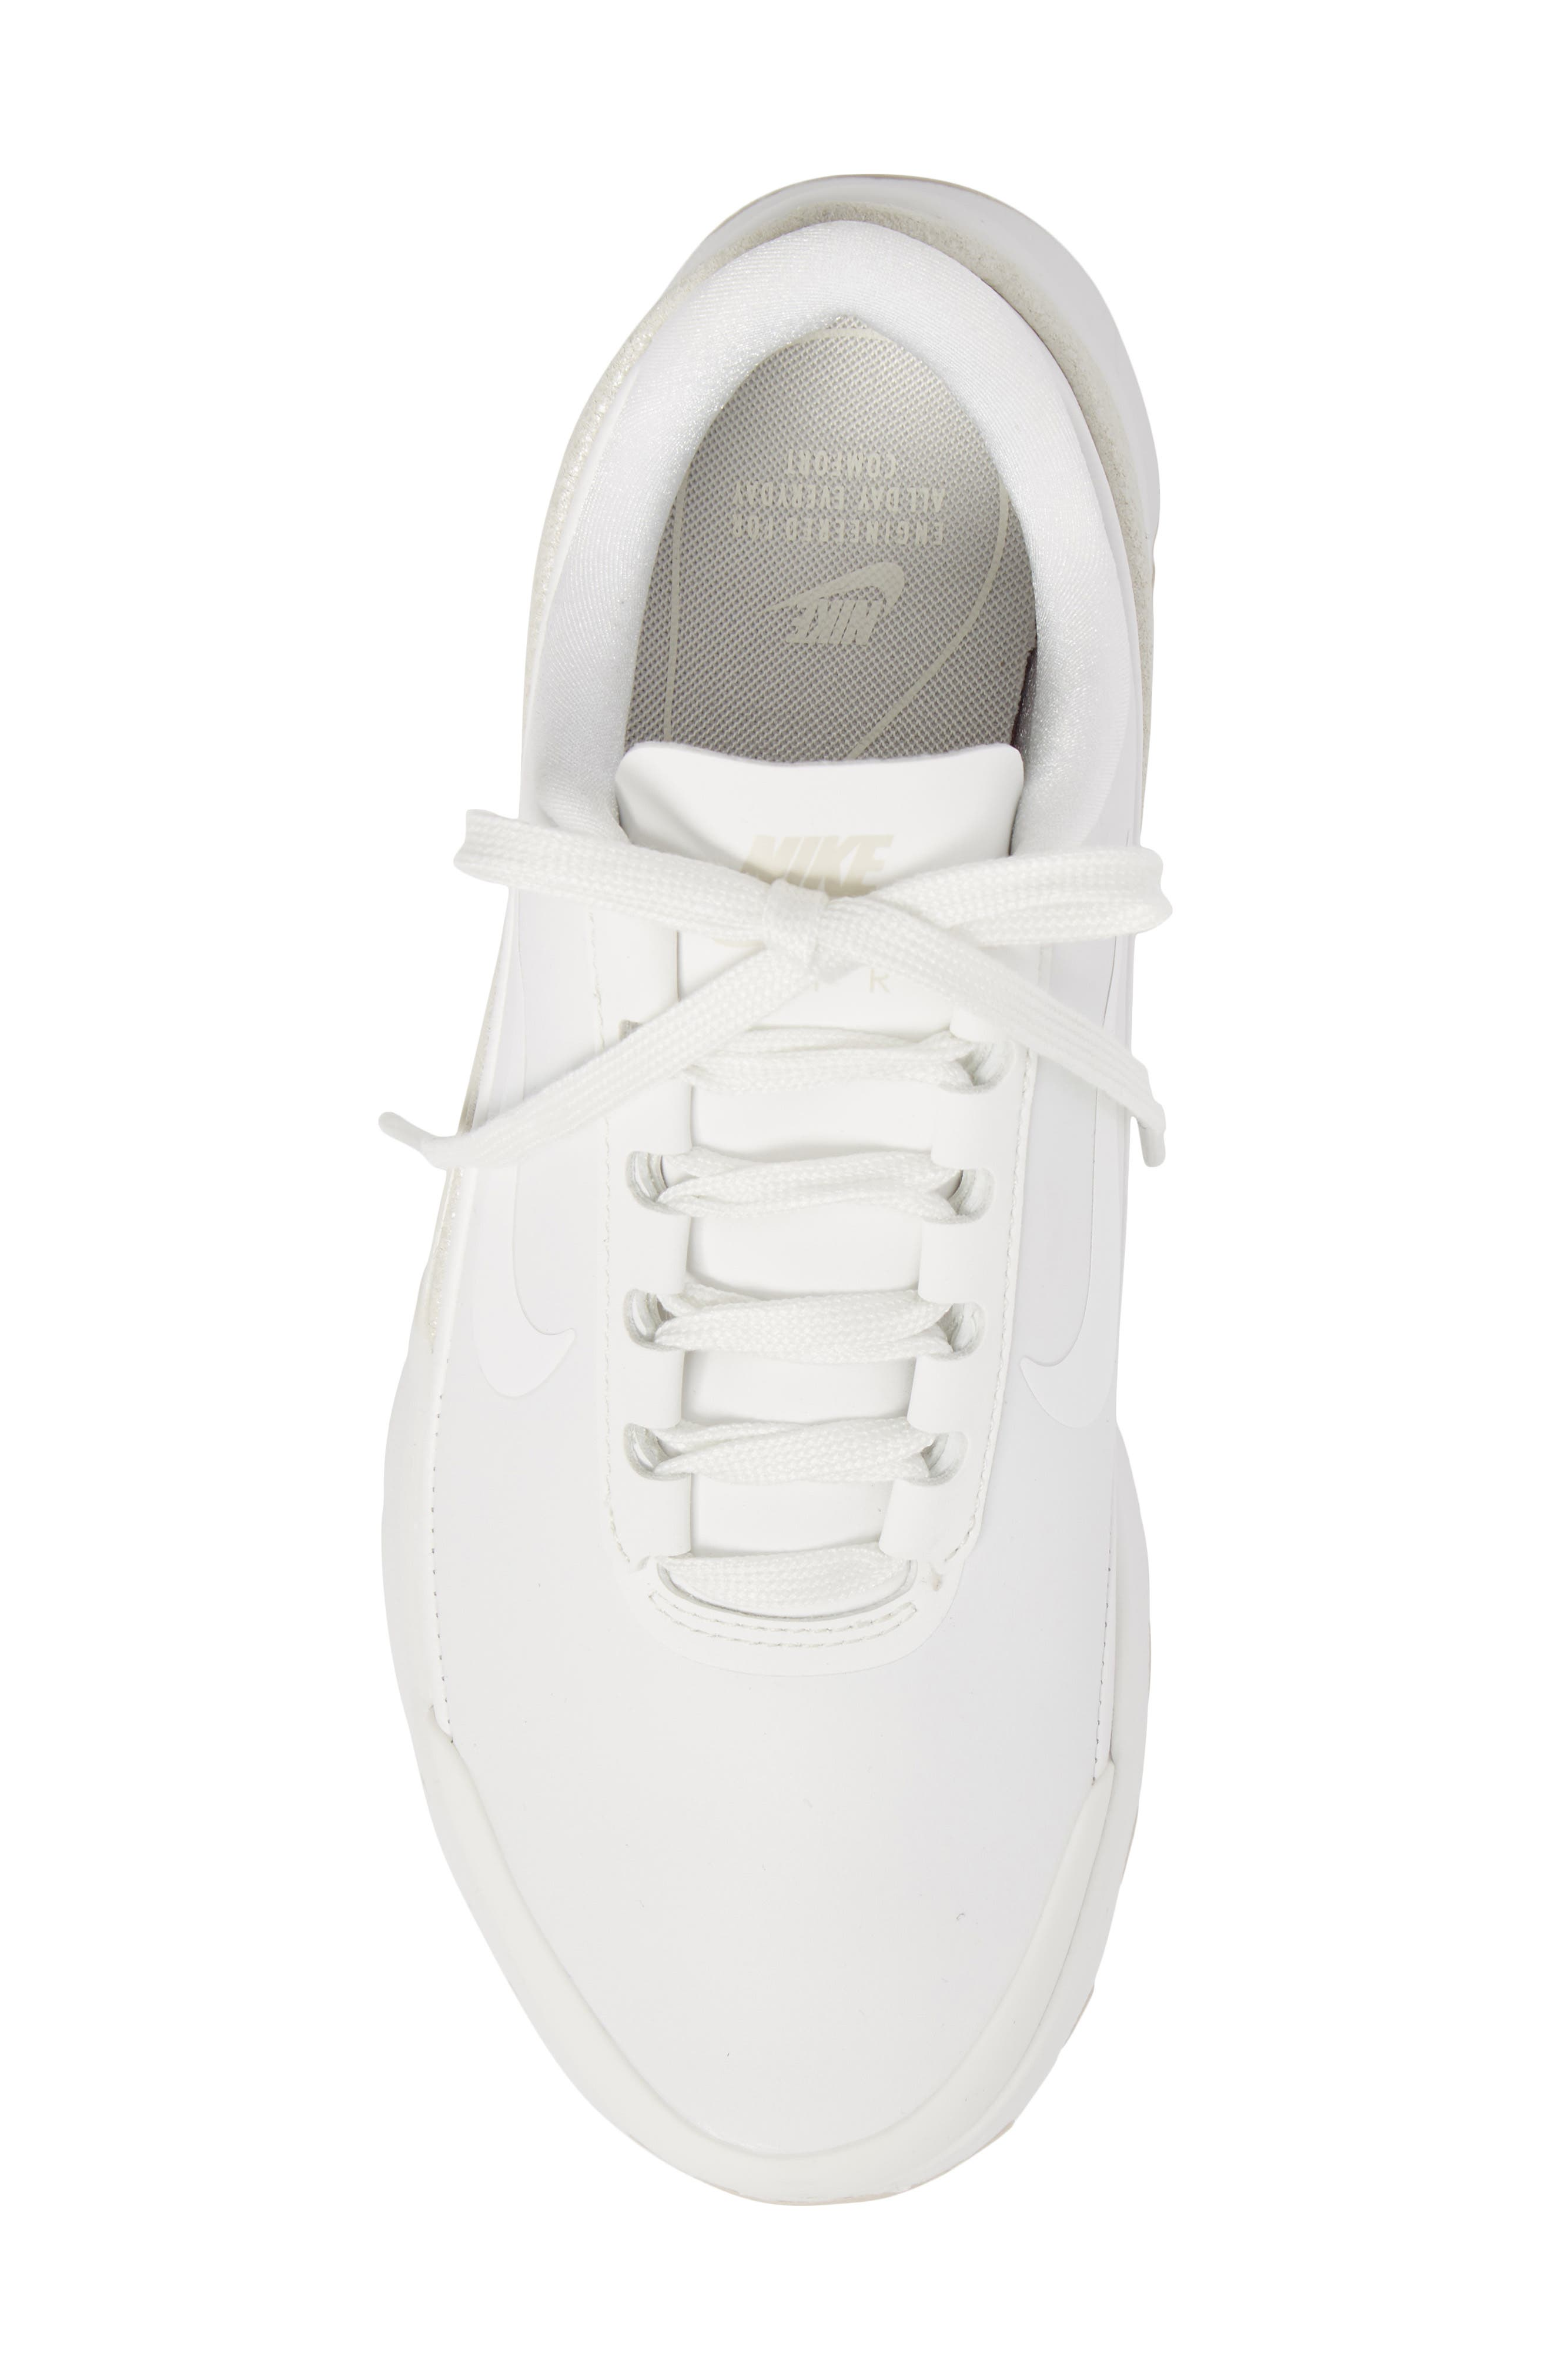 Air Max Jewell Sneaker,                             Alternate thumbnail 5, color,                             Summit White/ Summit White